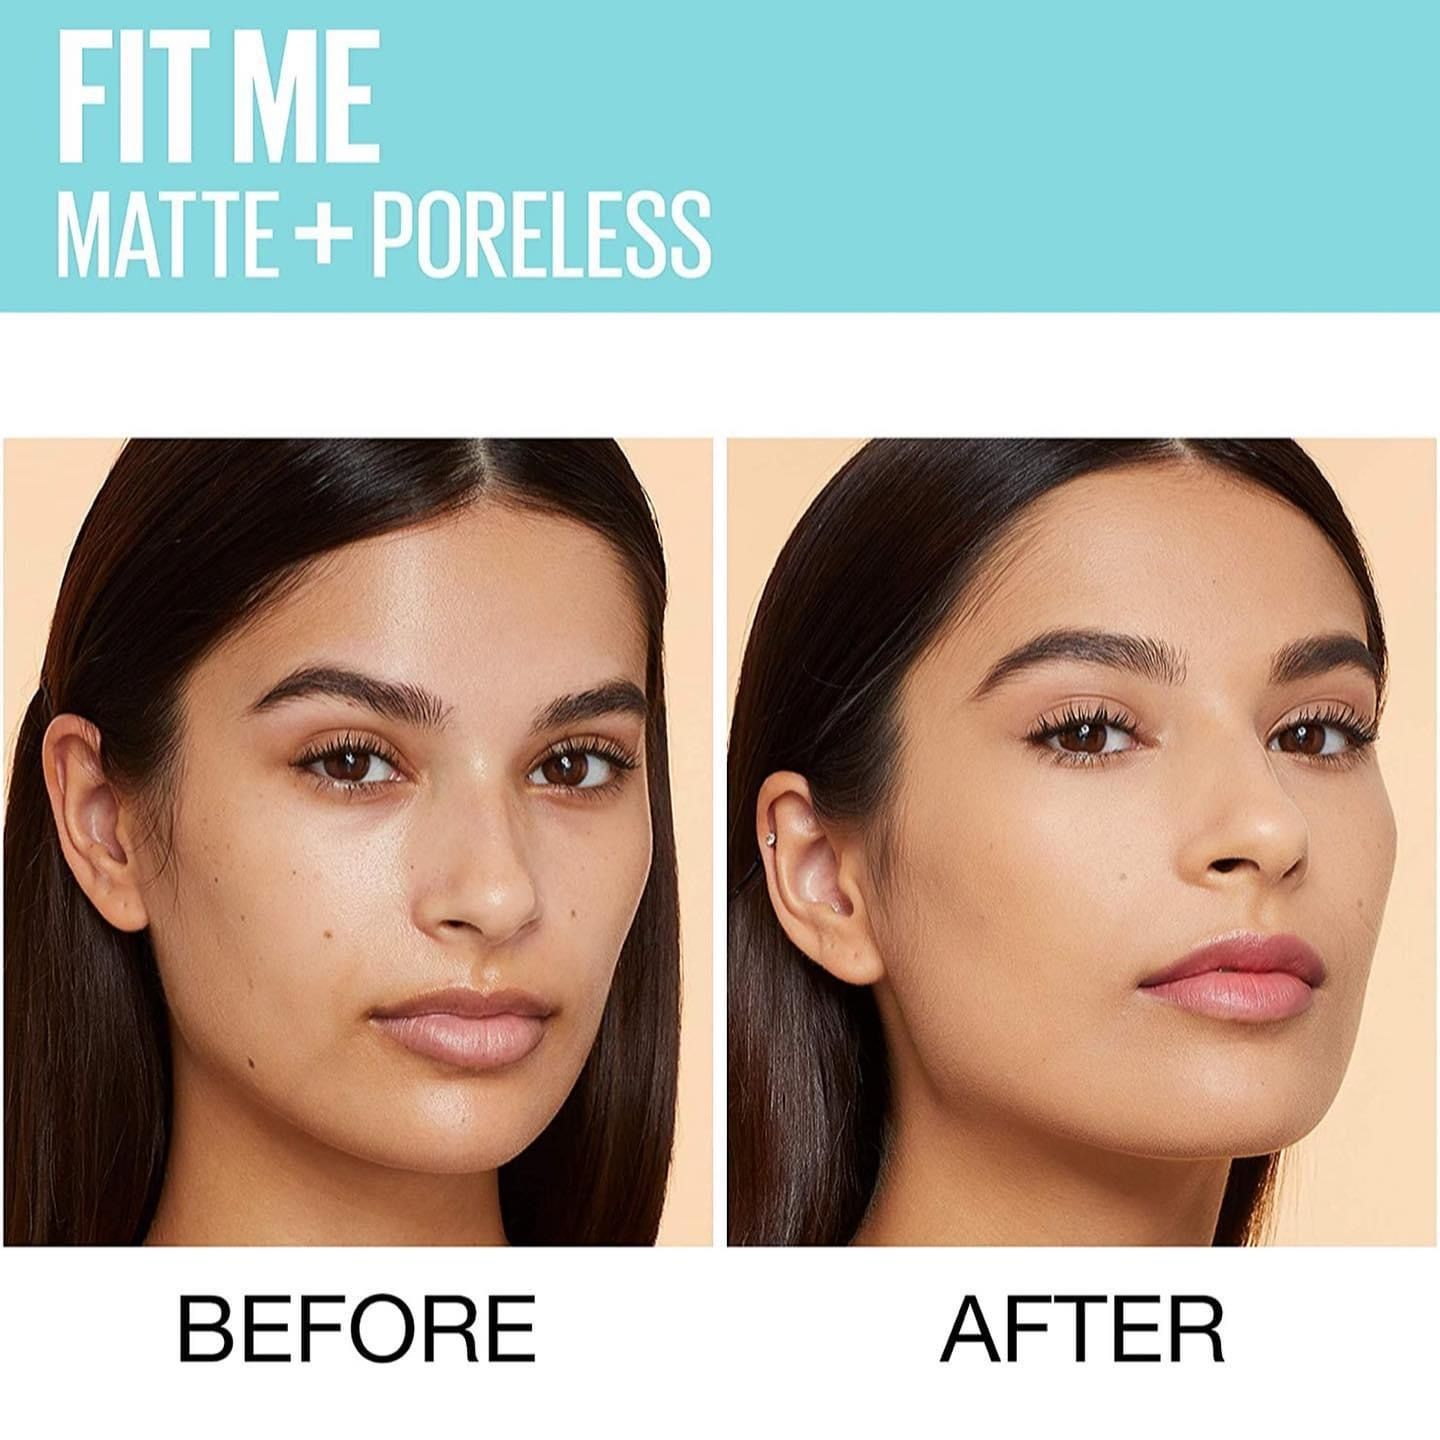 Pin by Claire Bowen on Makeup. in 2020 Maybelline